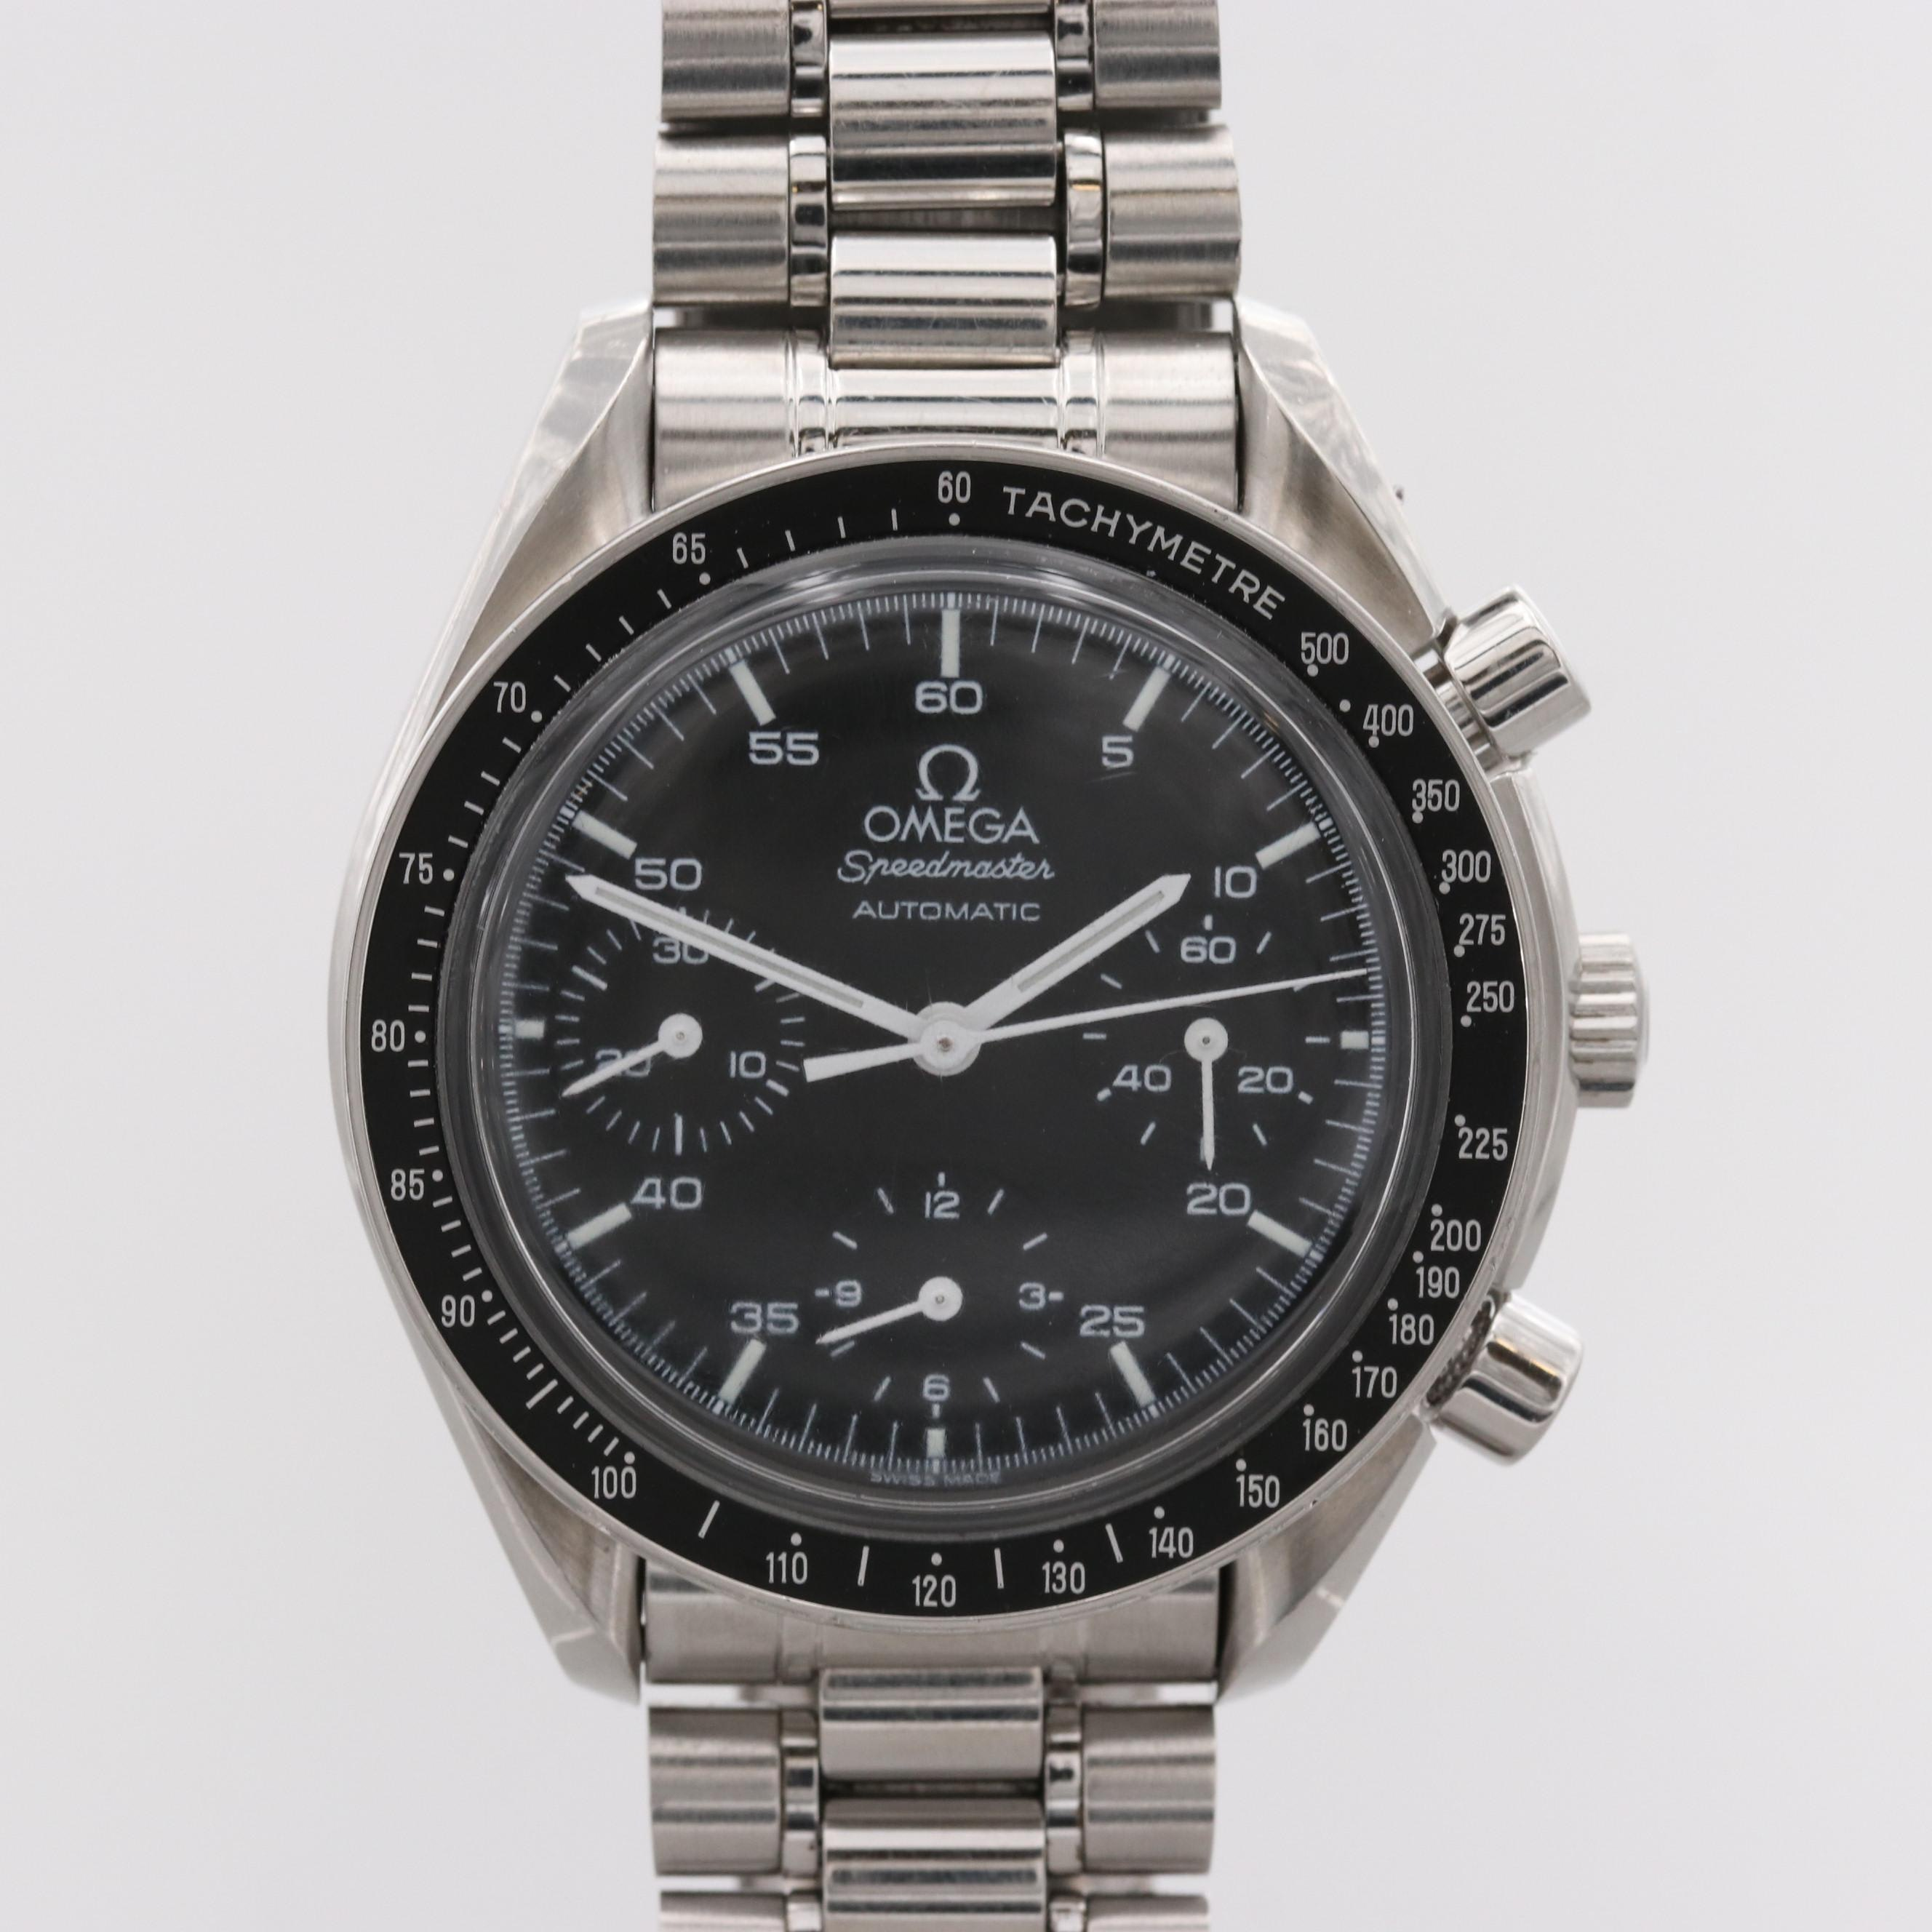 Omega Speedmaster Reduced Stainless Steel Automatic Chronograph Wristwatch